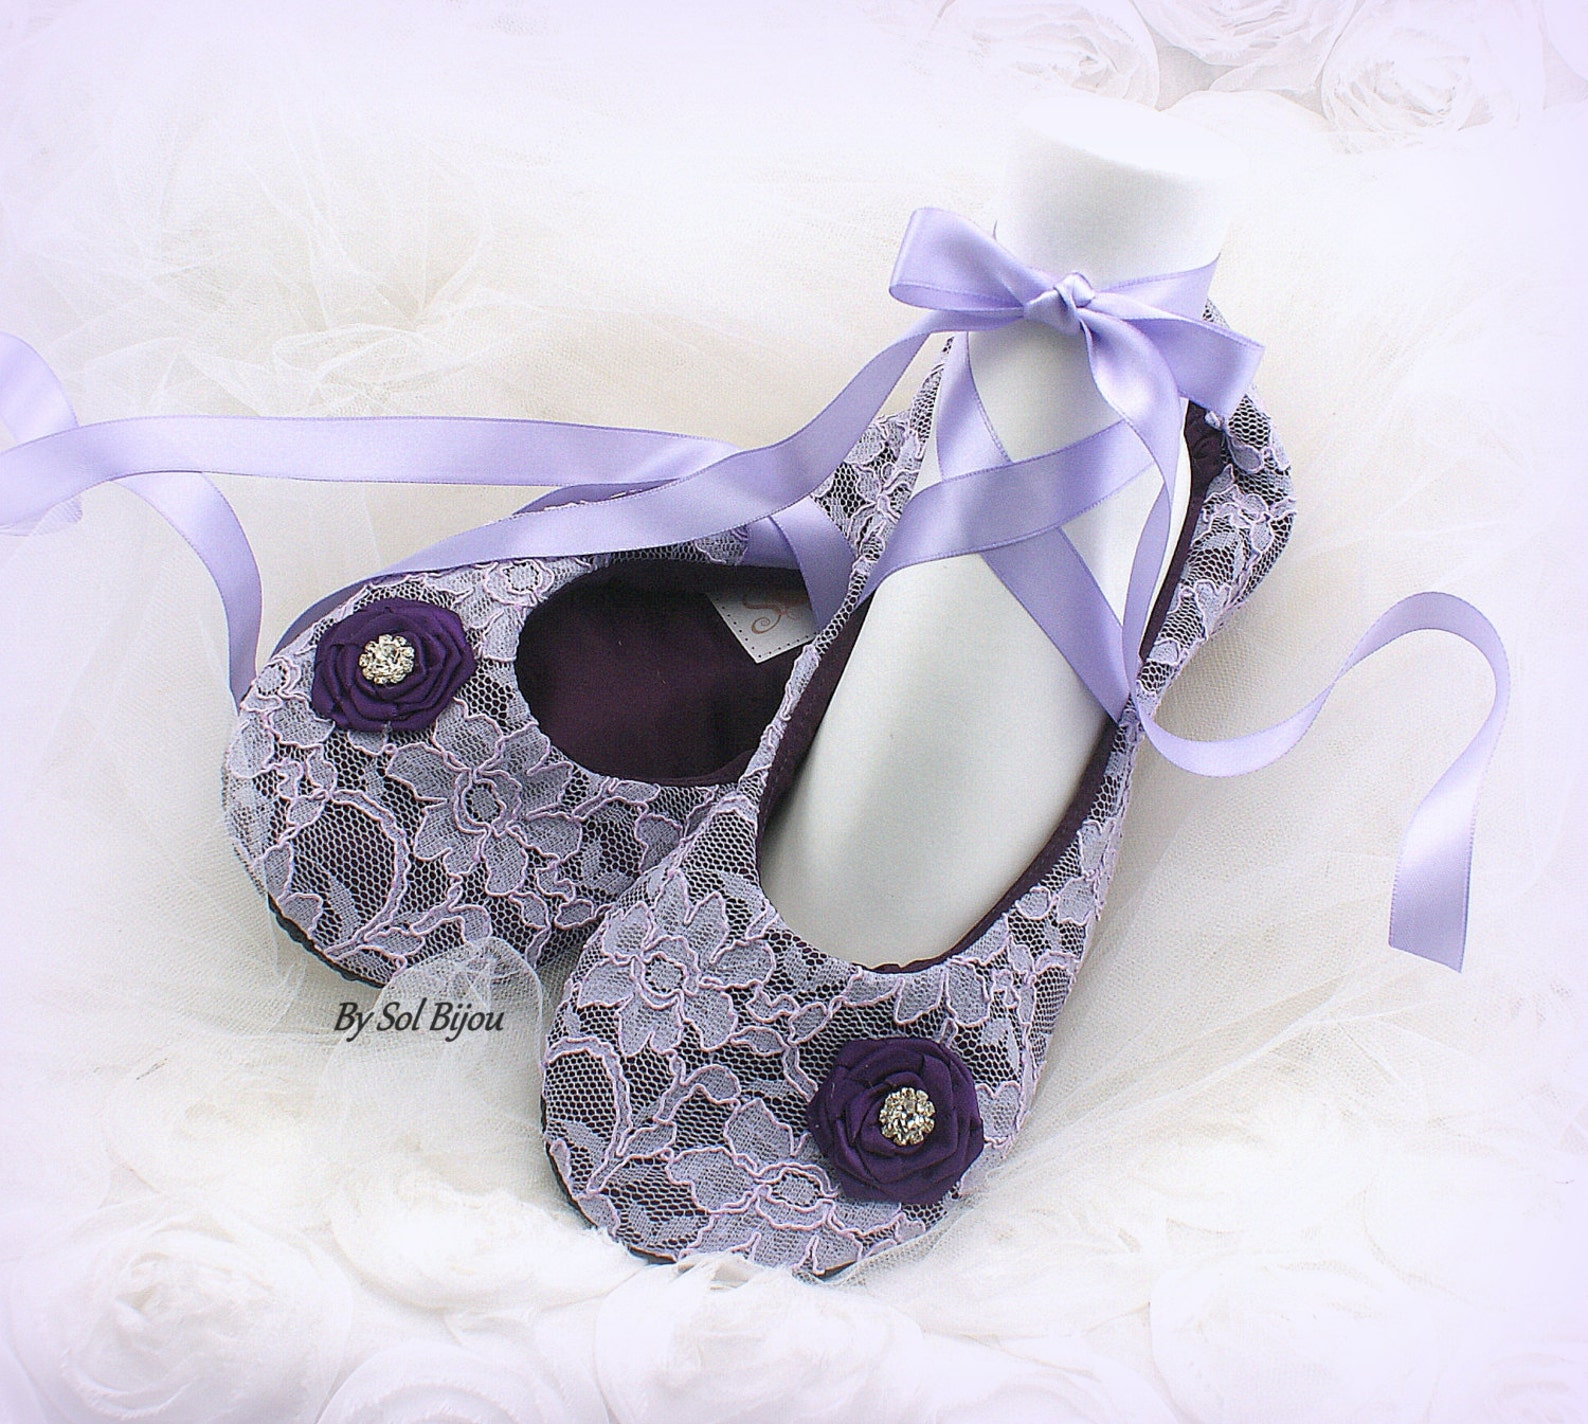 ballet flats, plum, purple, lilac, wedding flats, bridal shower, ballet slippers, reception, maid of honor, shoes, lace flats, v